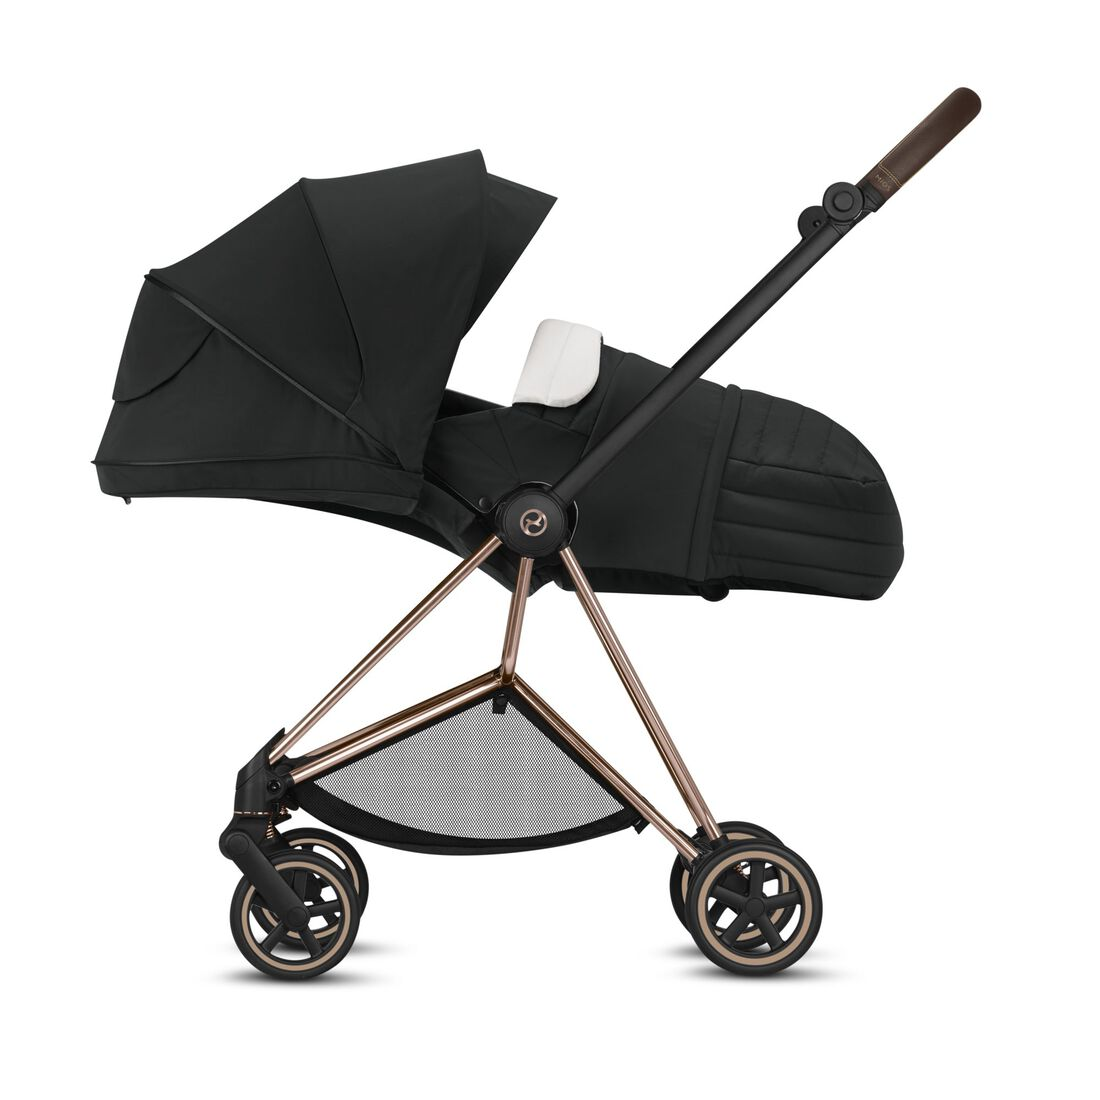 CYBEX Cot S - Carry handle and memory buttons